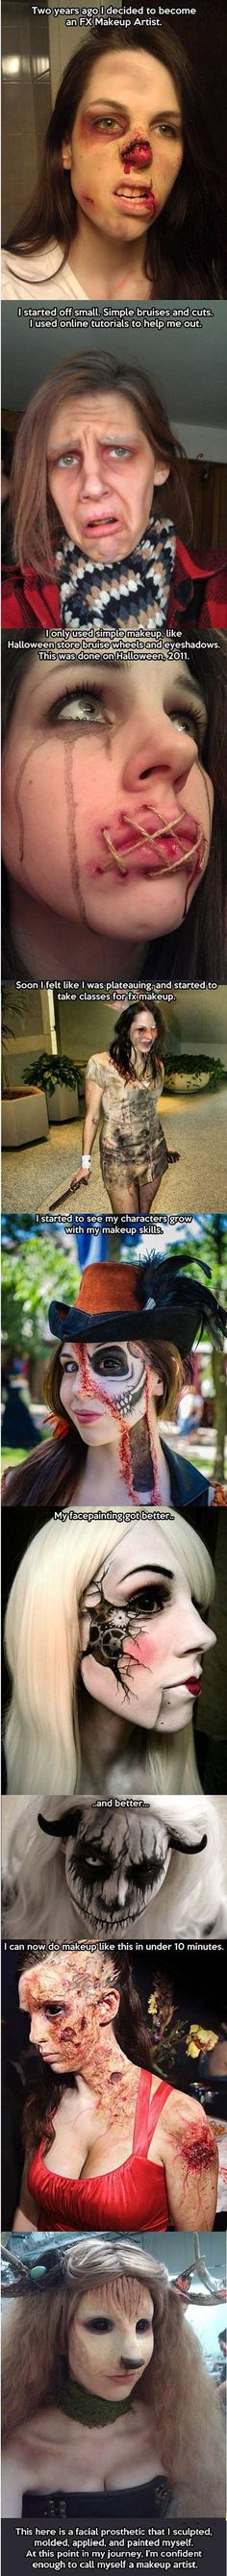 Awesome make-up FX artist